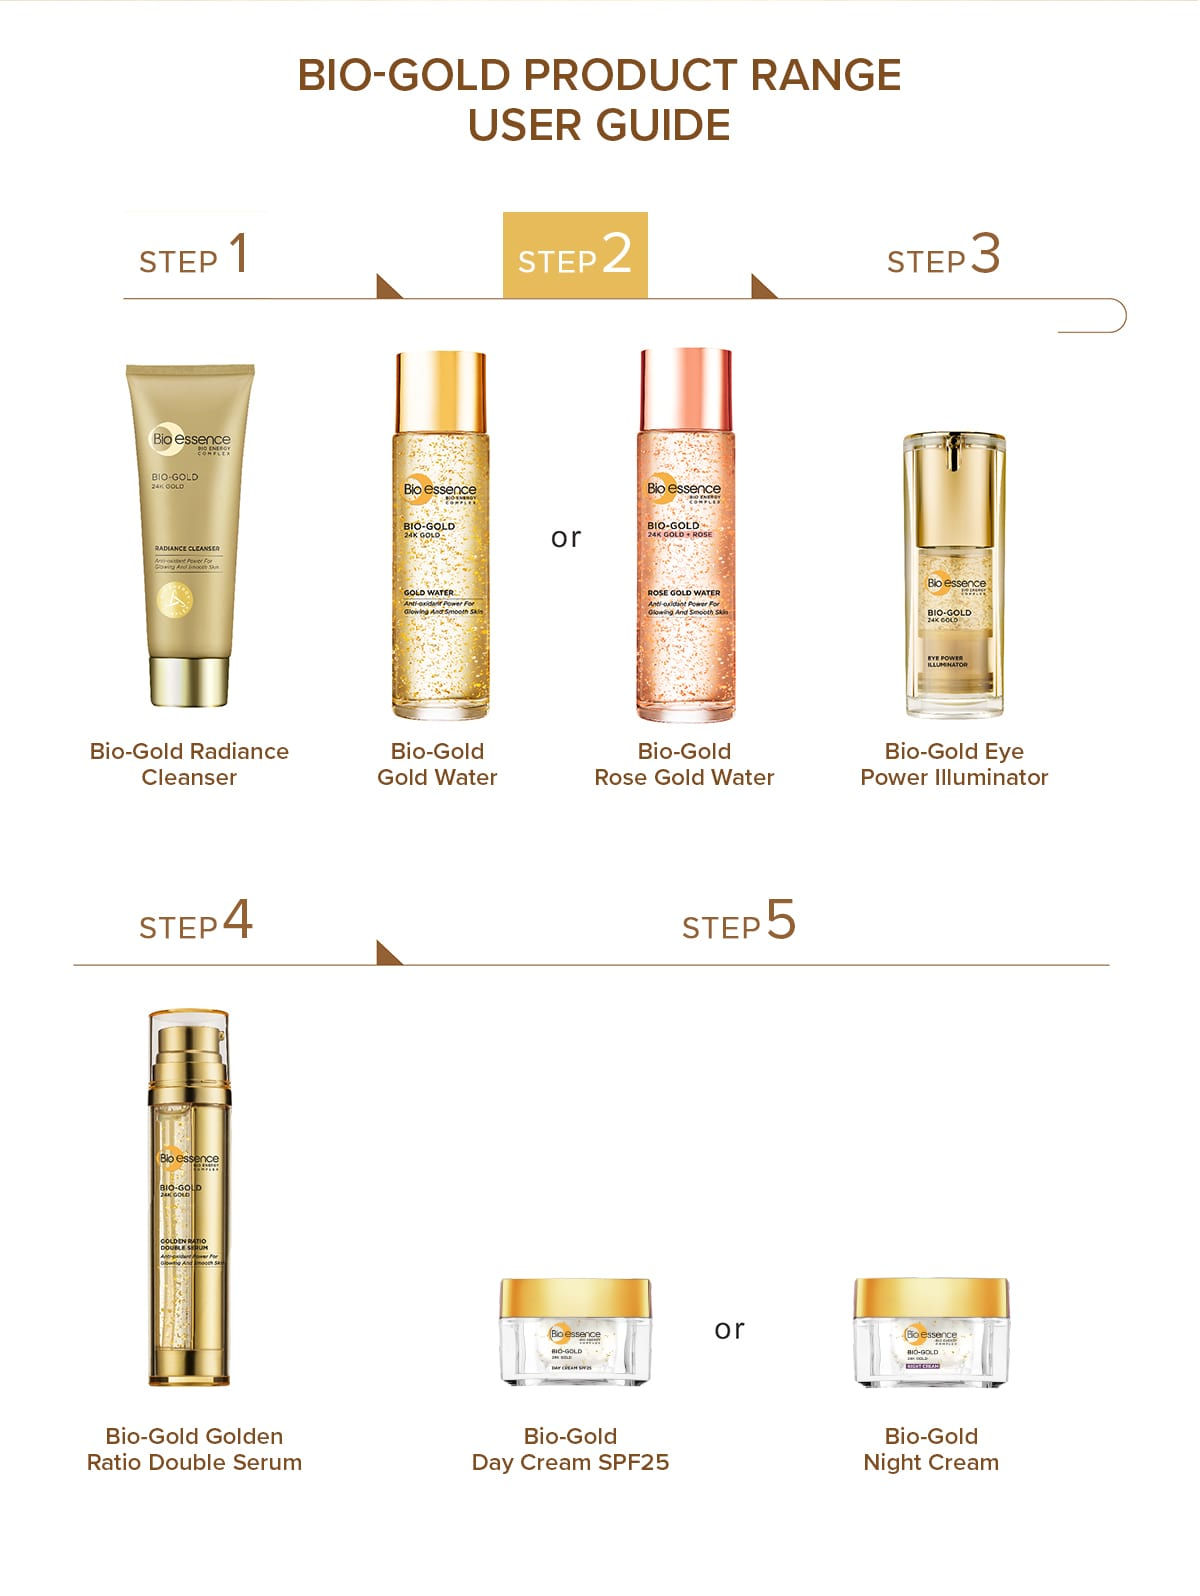 Bio-Gold Rose Gold Water - User Guide